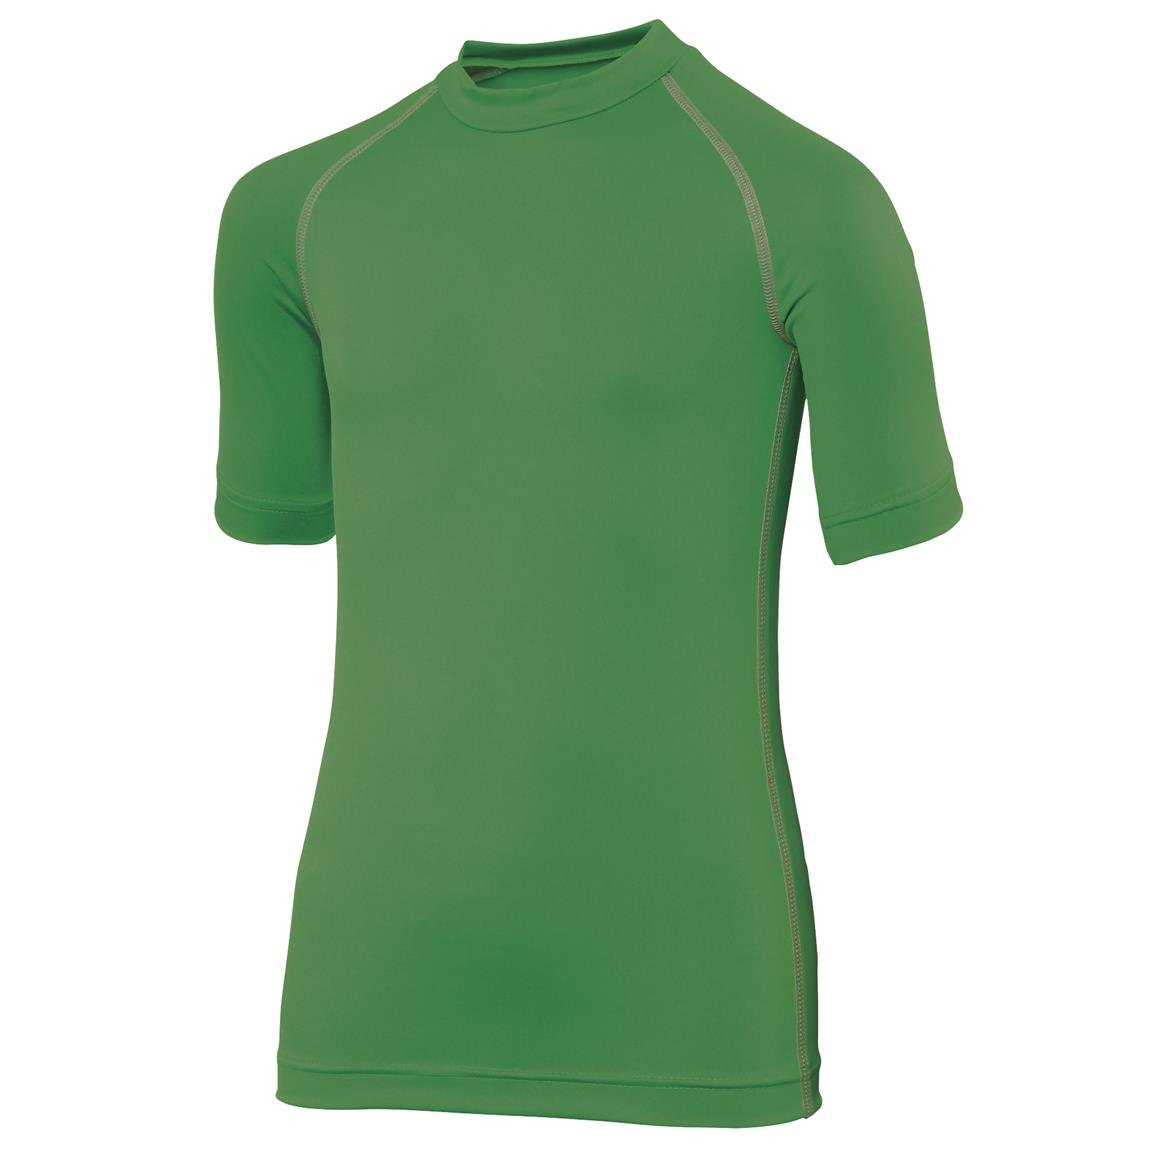 Latest Collection Of Rhino Base Layer Top Mens/womens Long Sleeve Compression For Sports/gym/rugby Sporting Goods Men's Clothing